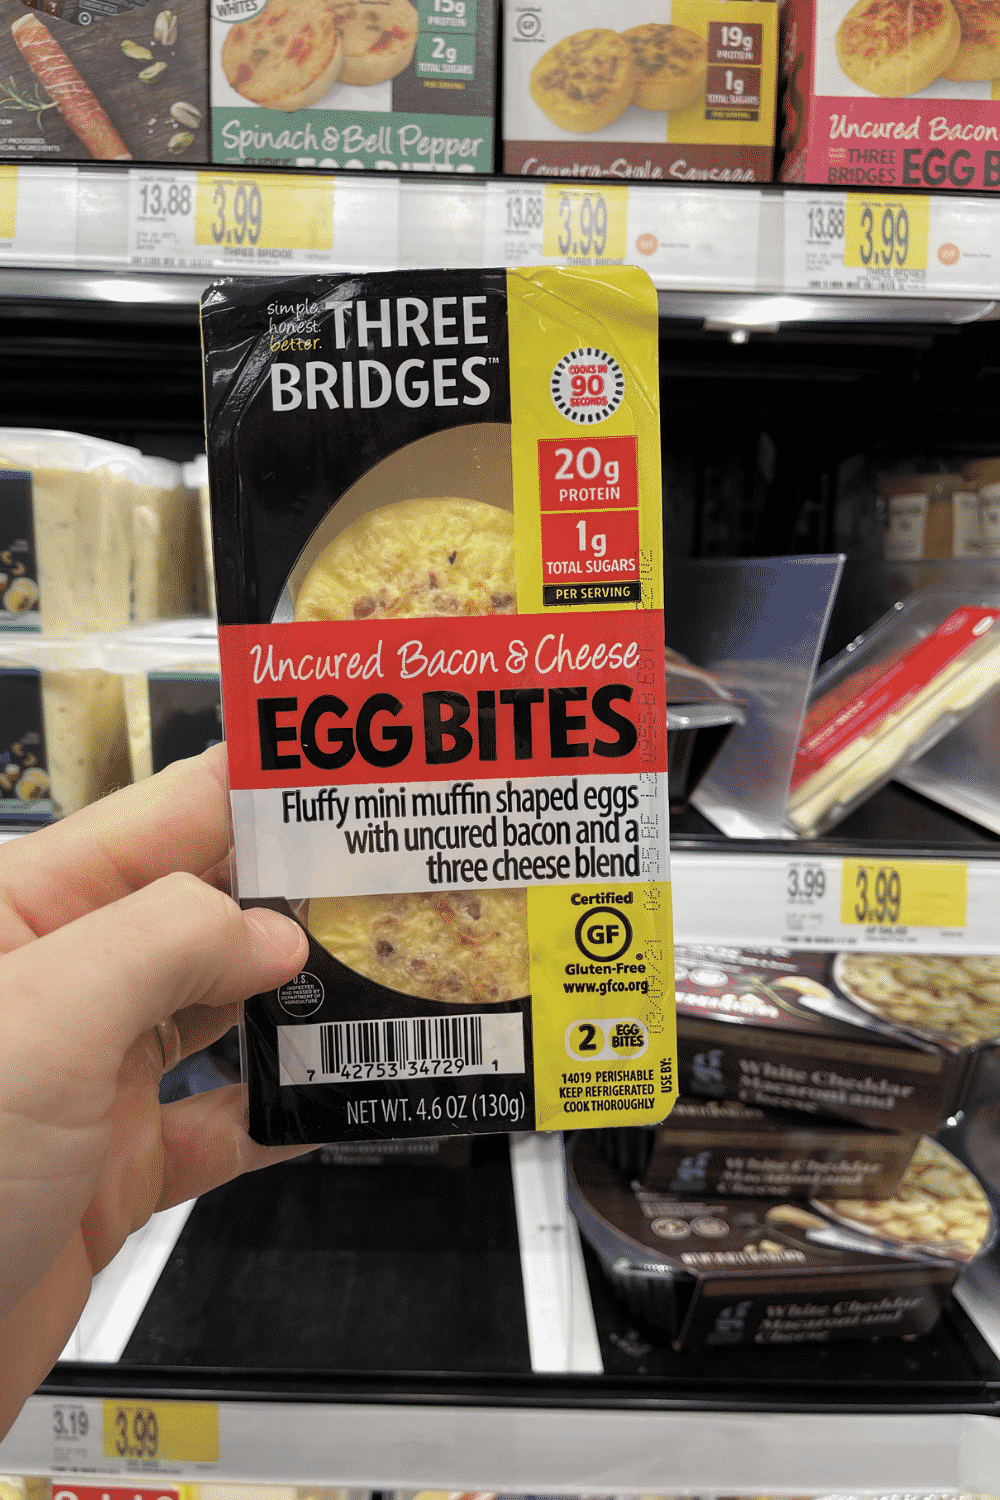 A hand holding a package of bacon and cheese egg bites.